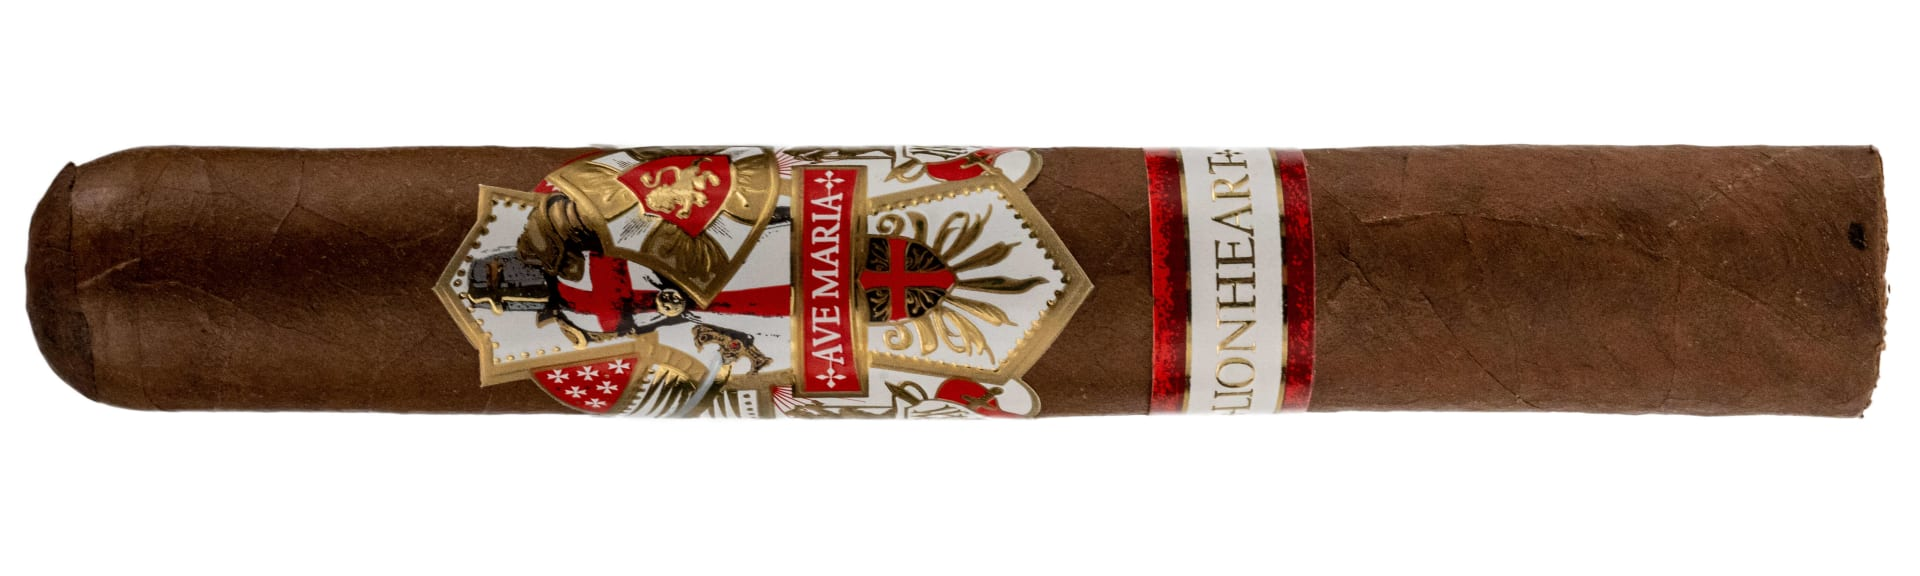 Blind Cigar Review: Ave Maria | Lionheart Earl Featured Image